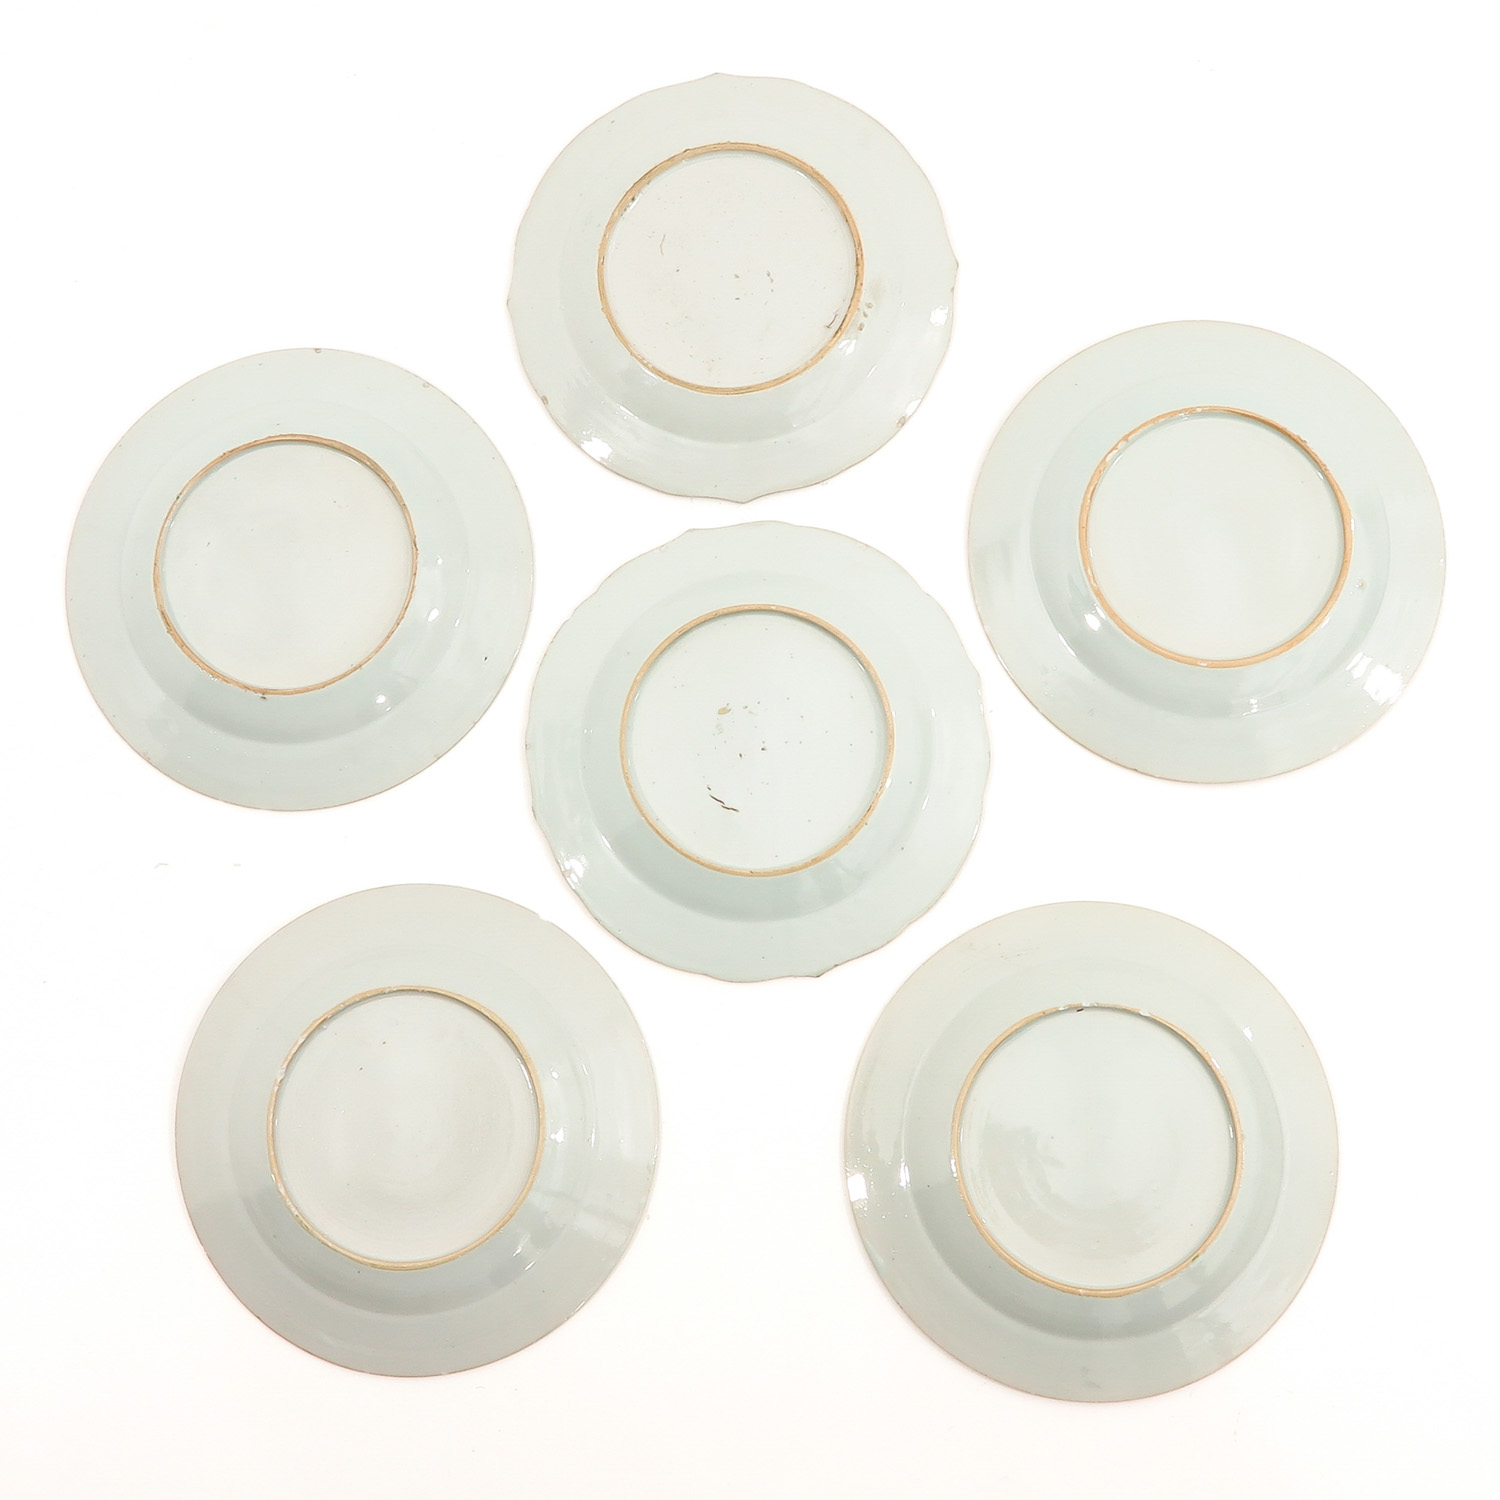 A Series of Famille Rose Plates - Image 2 of 10